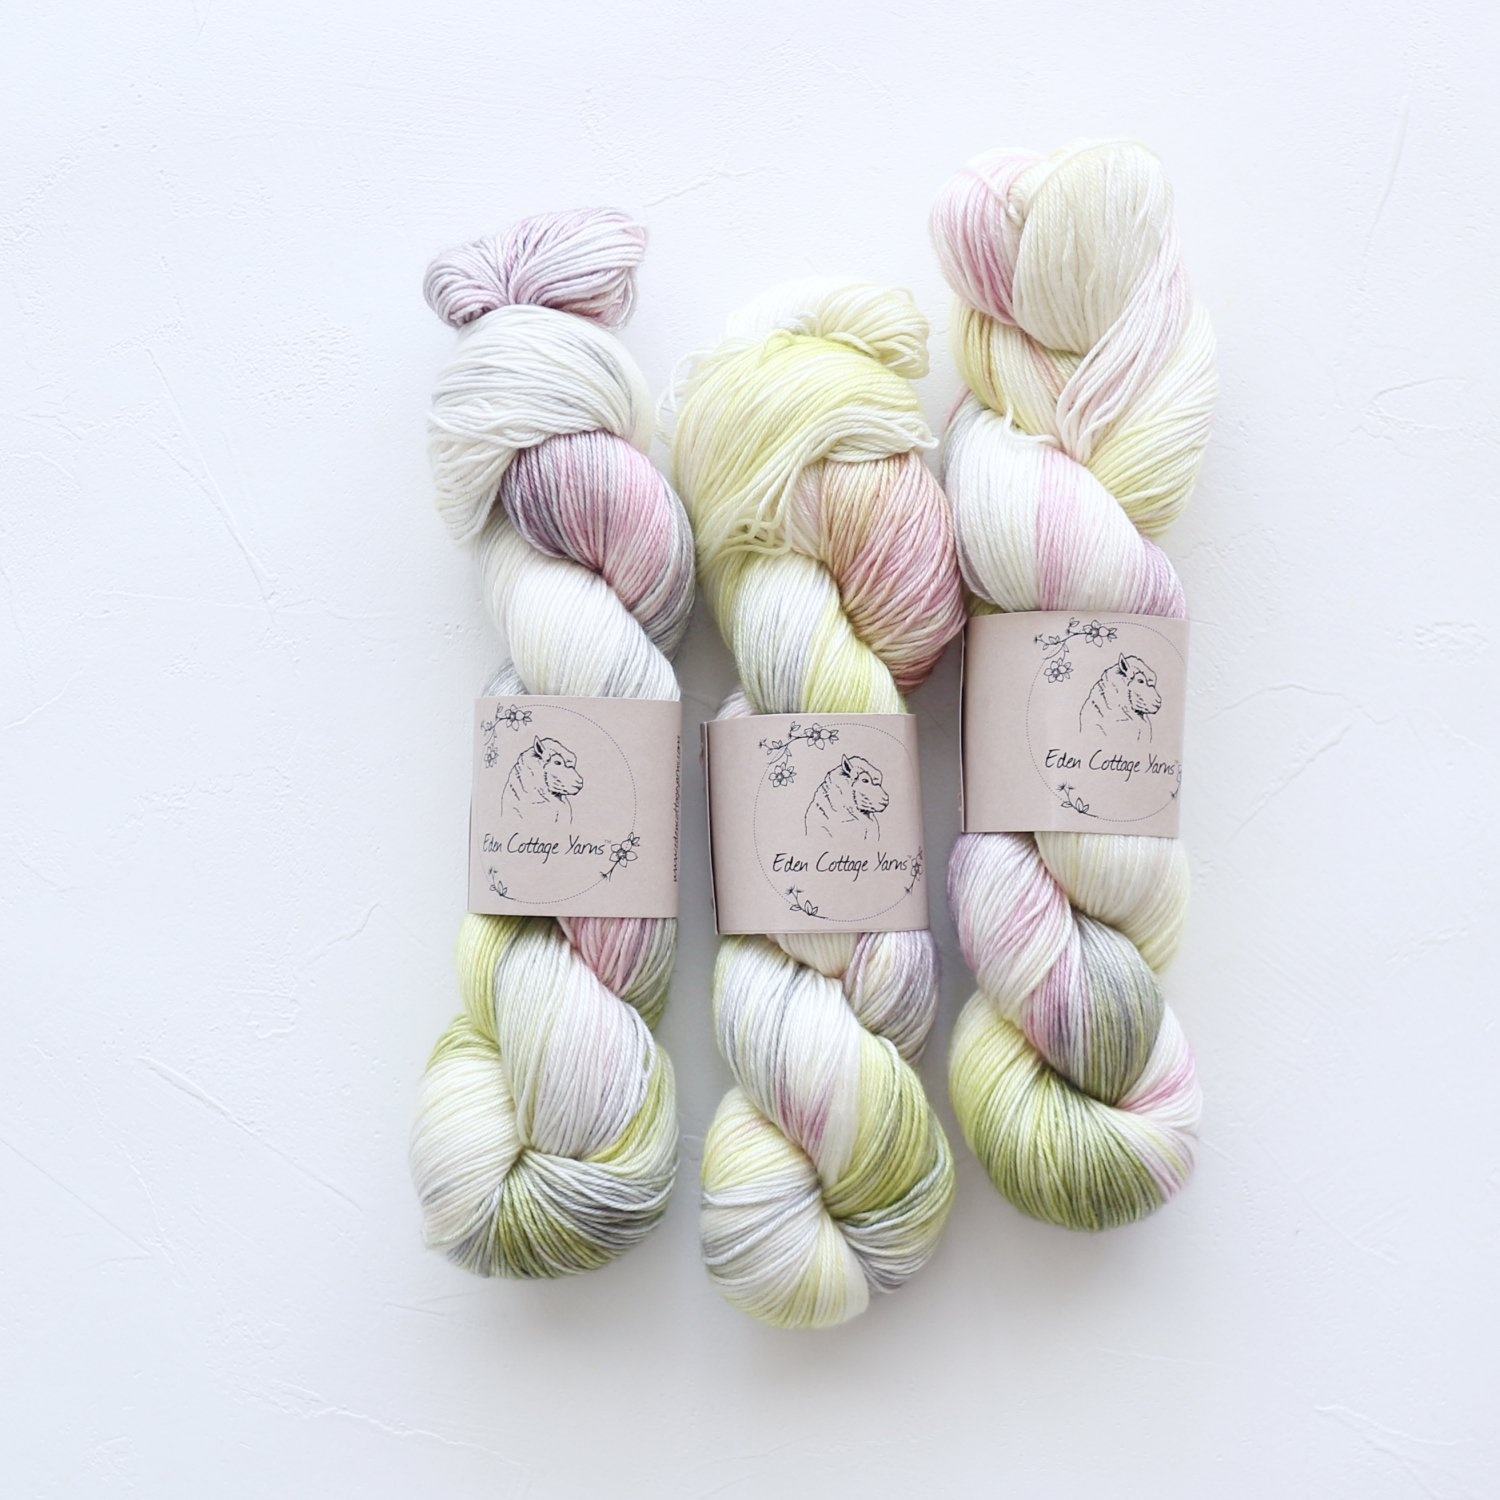 【Eden Cottage Yarns】<br>Titus 4ply<br>Cosmos Flowerbed